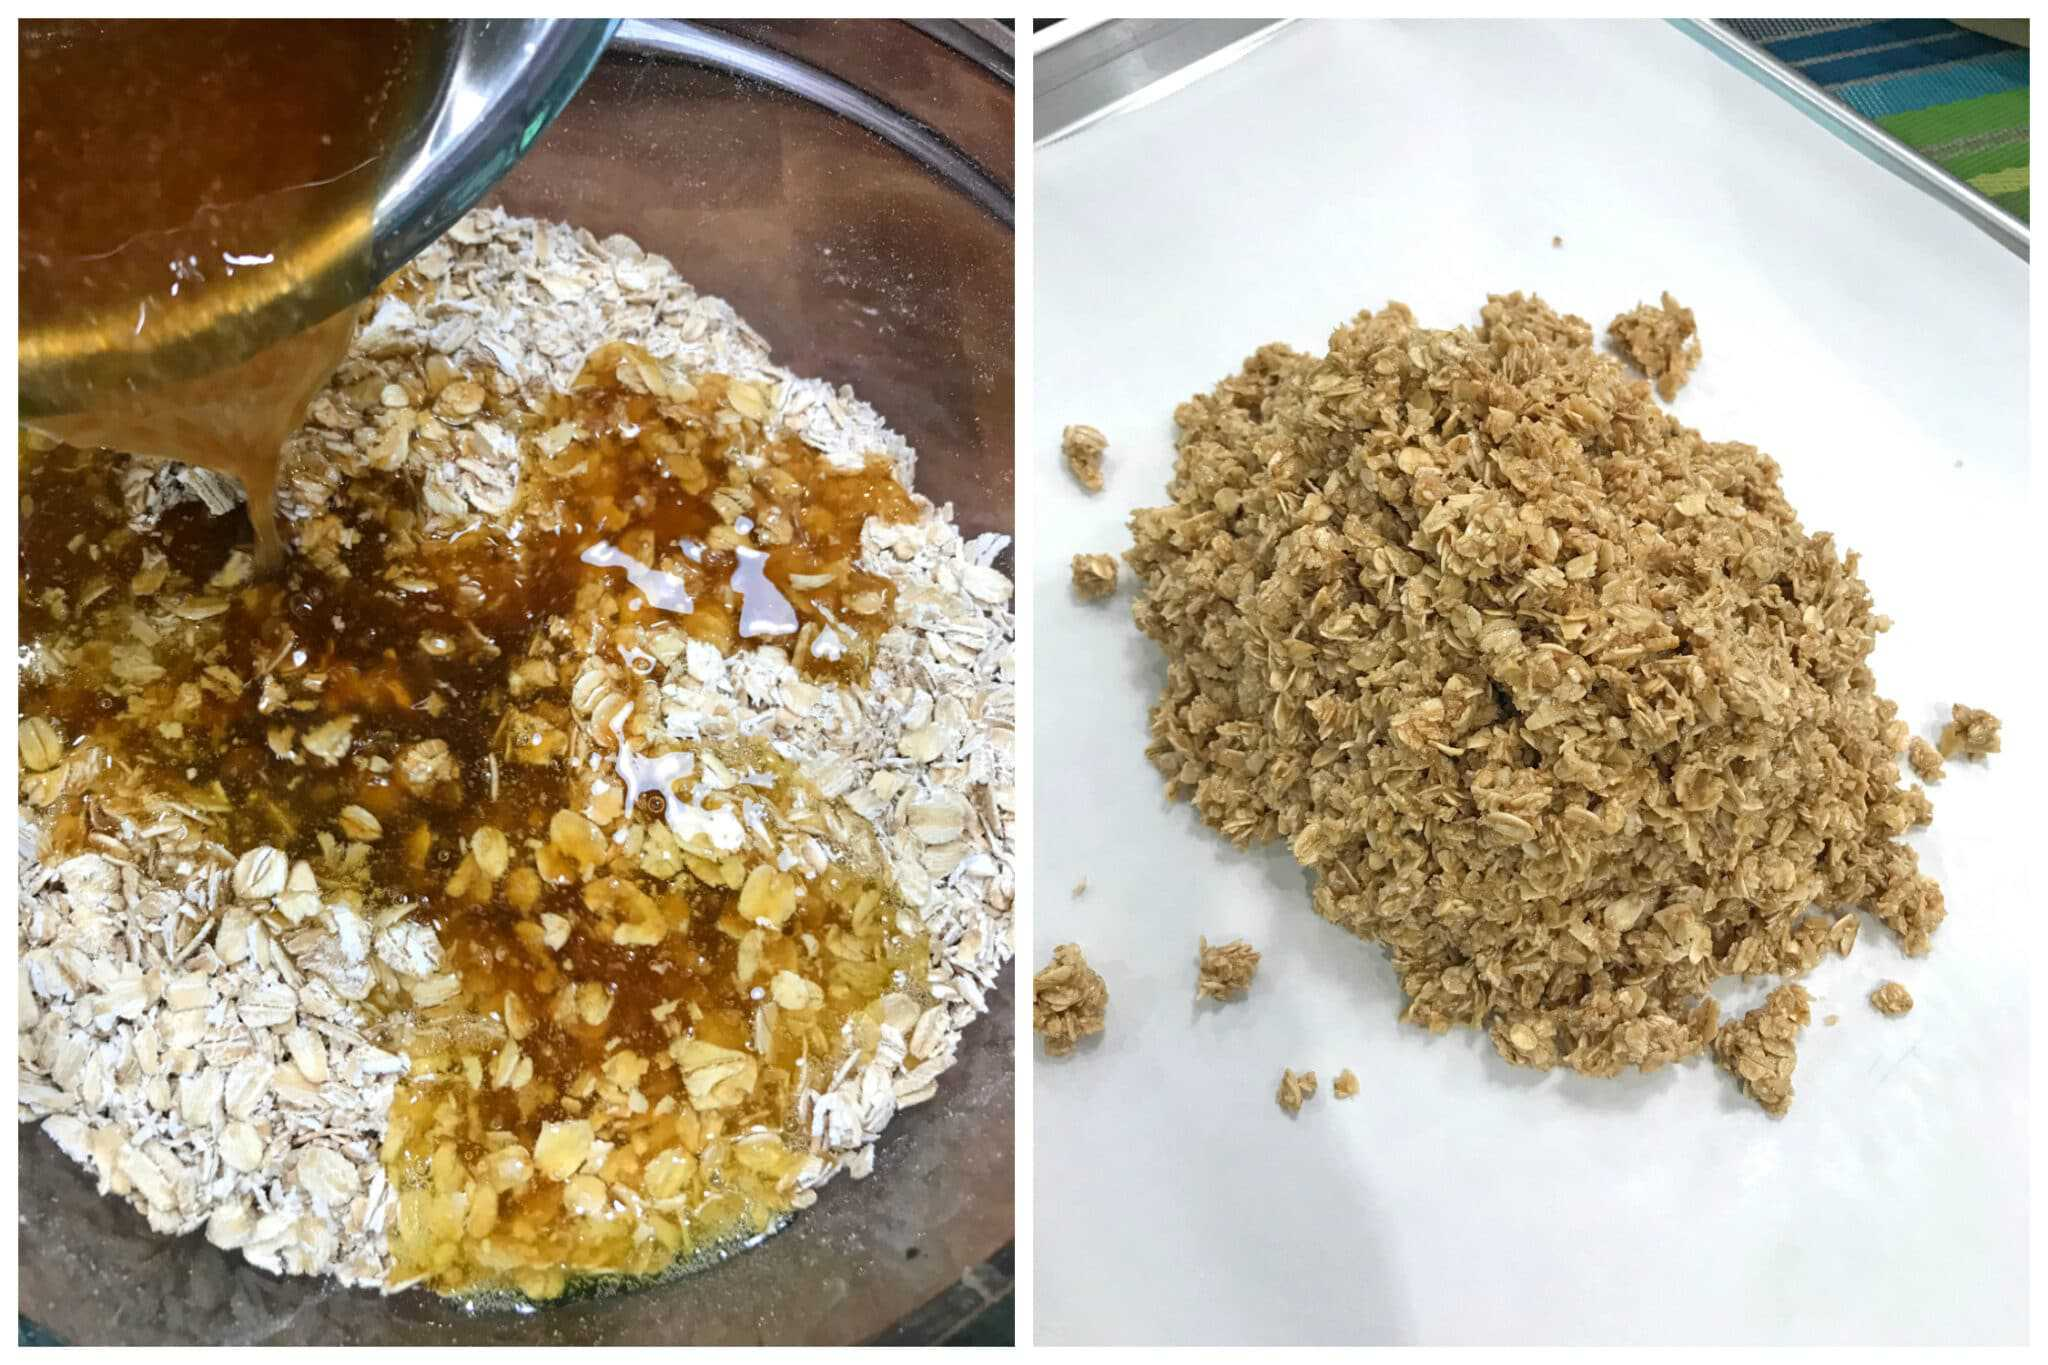 pour sugar mixture over oats and place on lined baking sheet